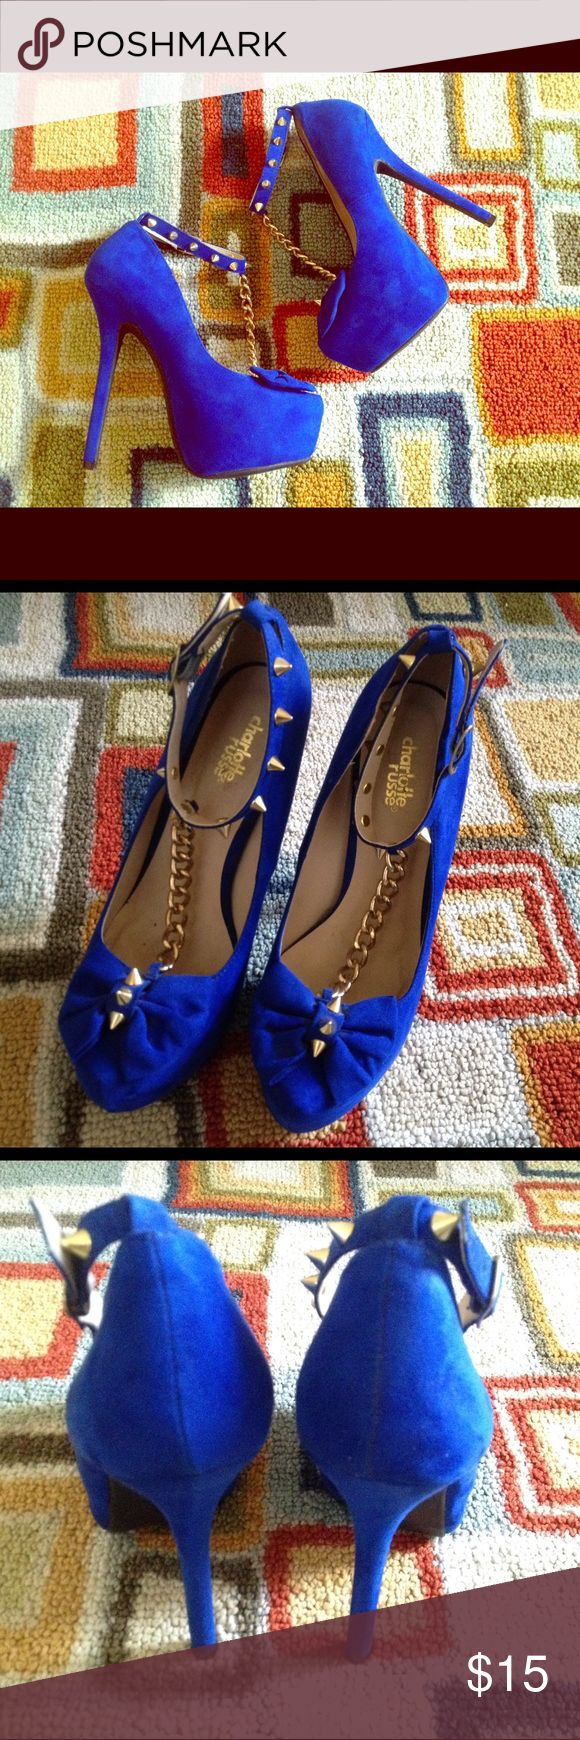 Electric blue and gold stilettos - Charlotte Russe Vibrant blue Charlotte Russe stilettos with gold studding at ankle and toe. Sexy gold chain down front. Size 8. New without tags. Feel free to ask questions! 💛 Charlotte Russe Shoes Heels